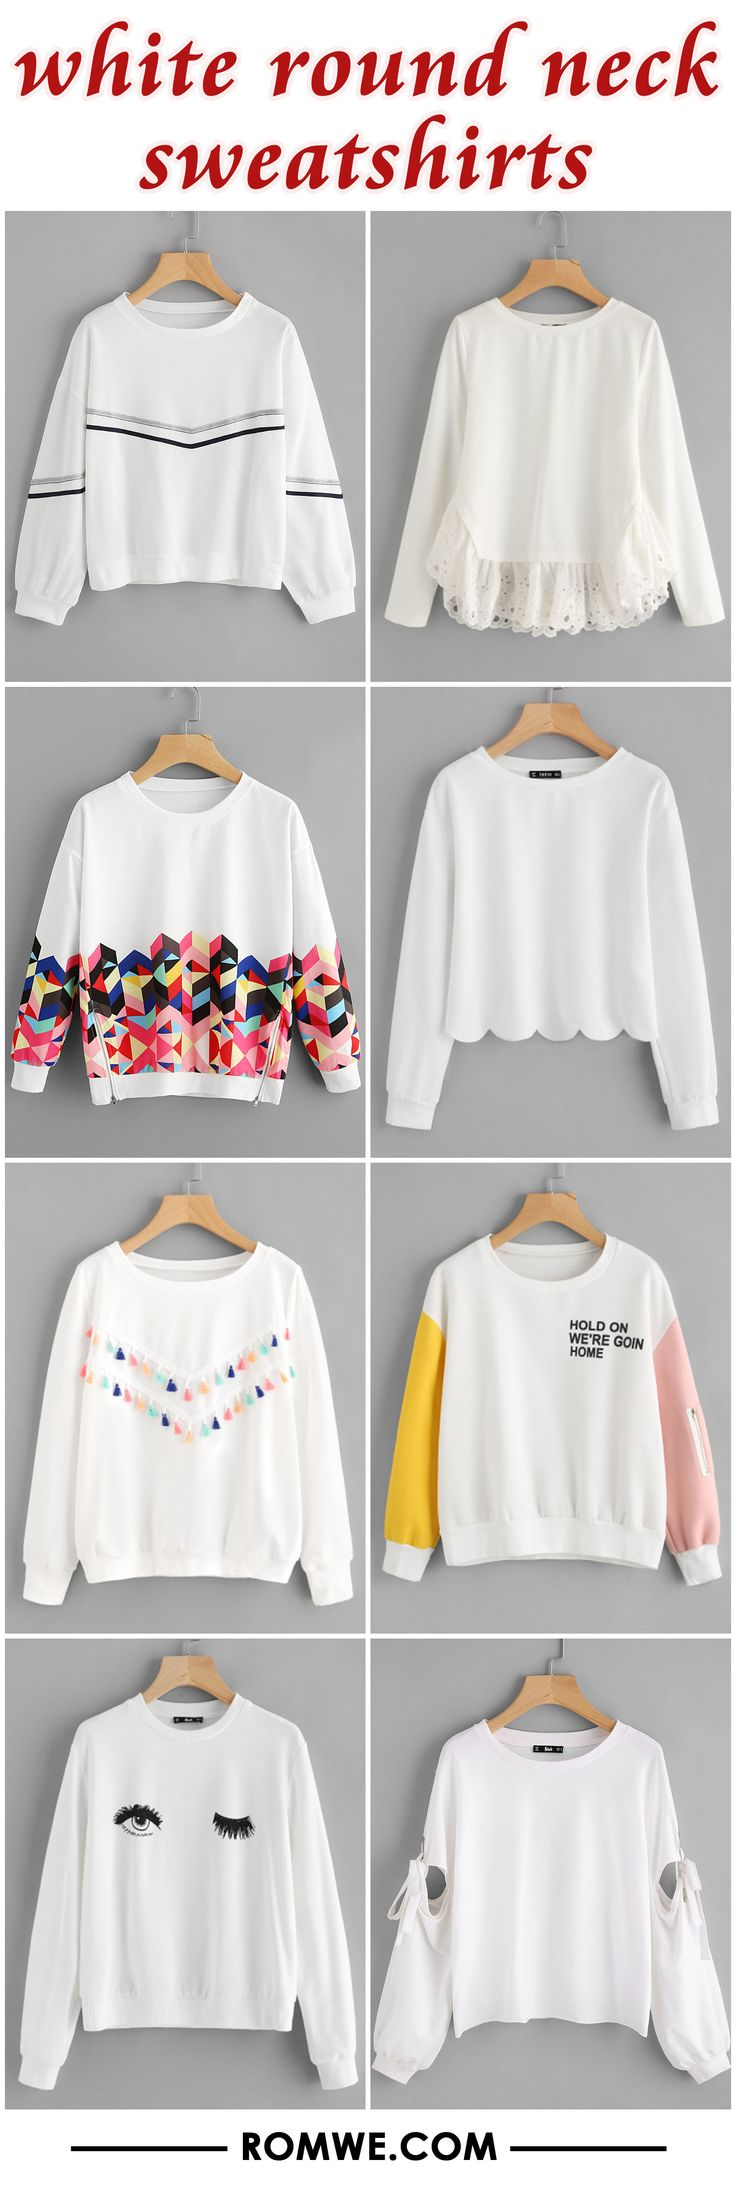 white round neck sweatshirts